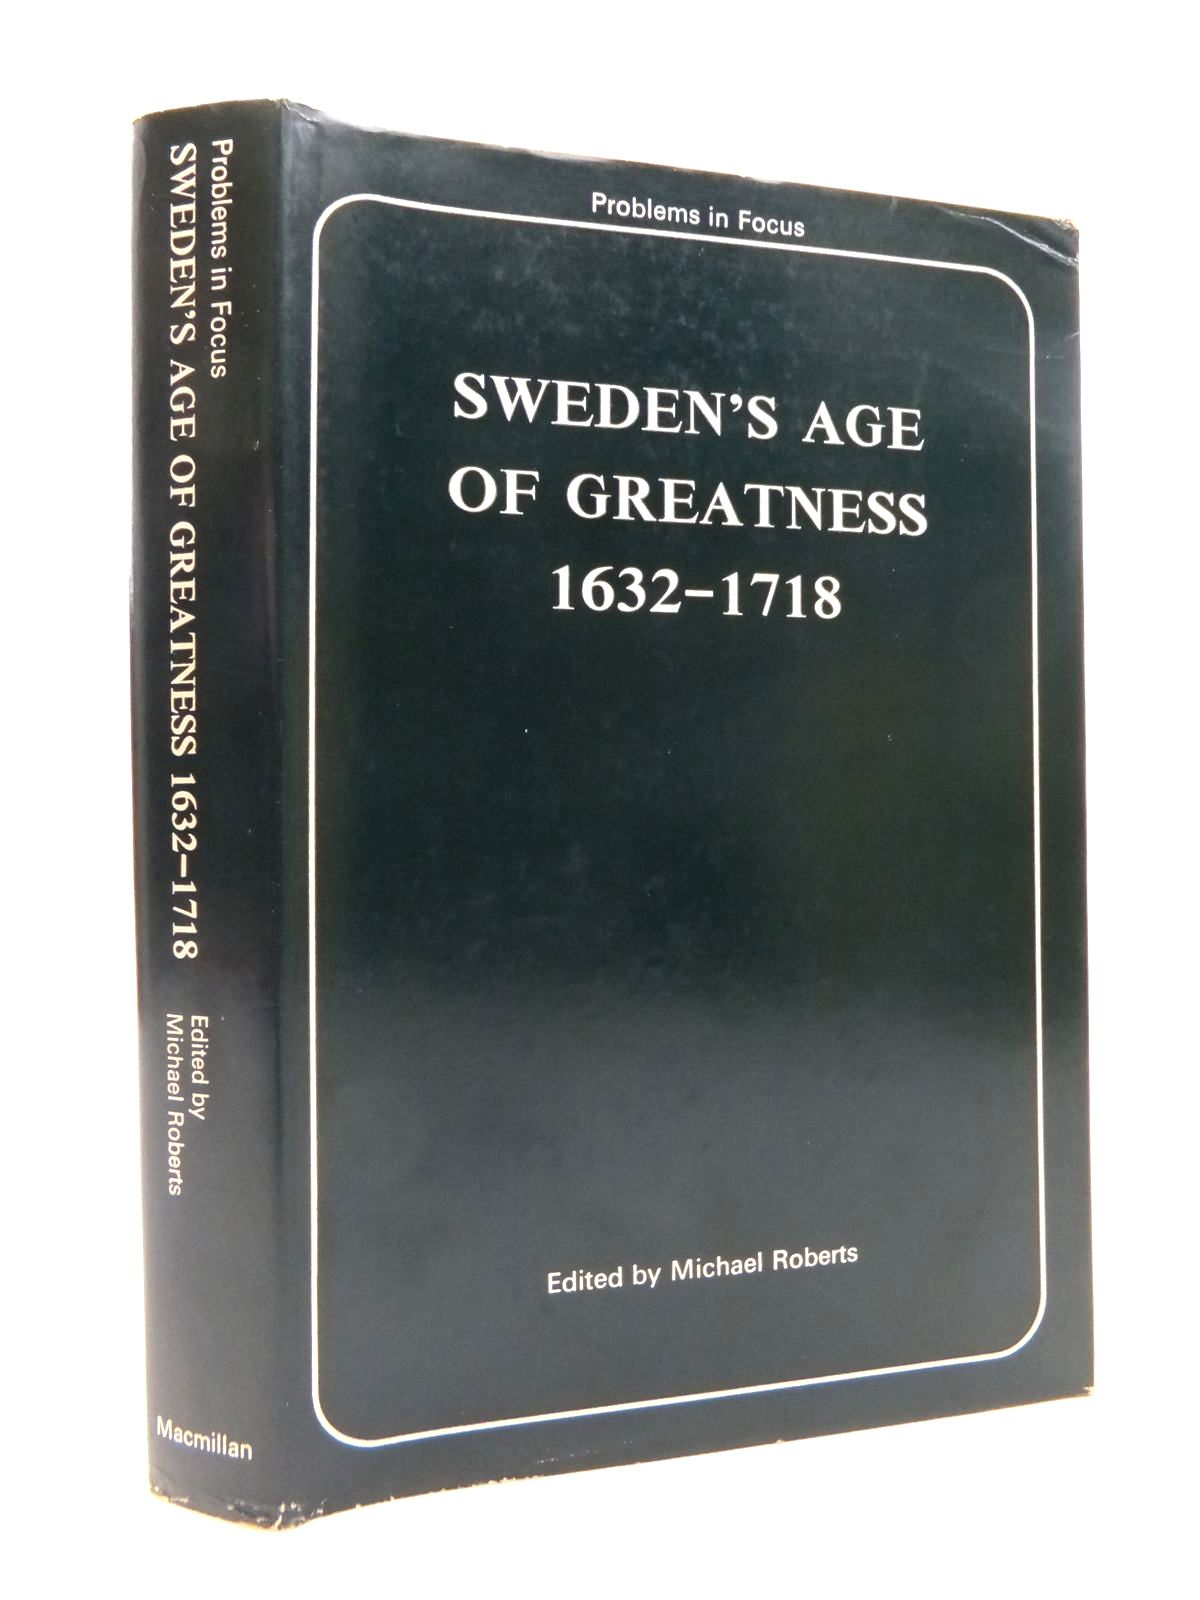 Photo of SWEDEN'S AGE OF GREATNESS 1632-1718 (PROBLEMS IN FOCUS) written by Roberts, Michael published by MacMillan (STOCK CODE: 1814555)  for sale by Stella & Rose's Books